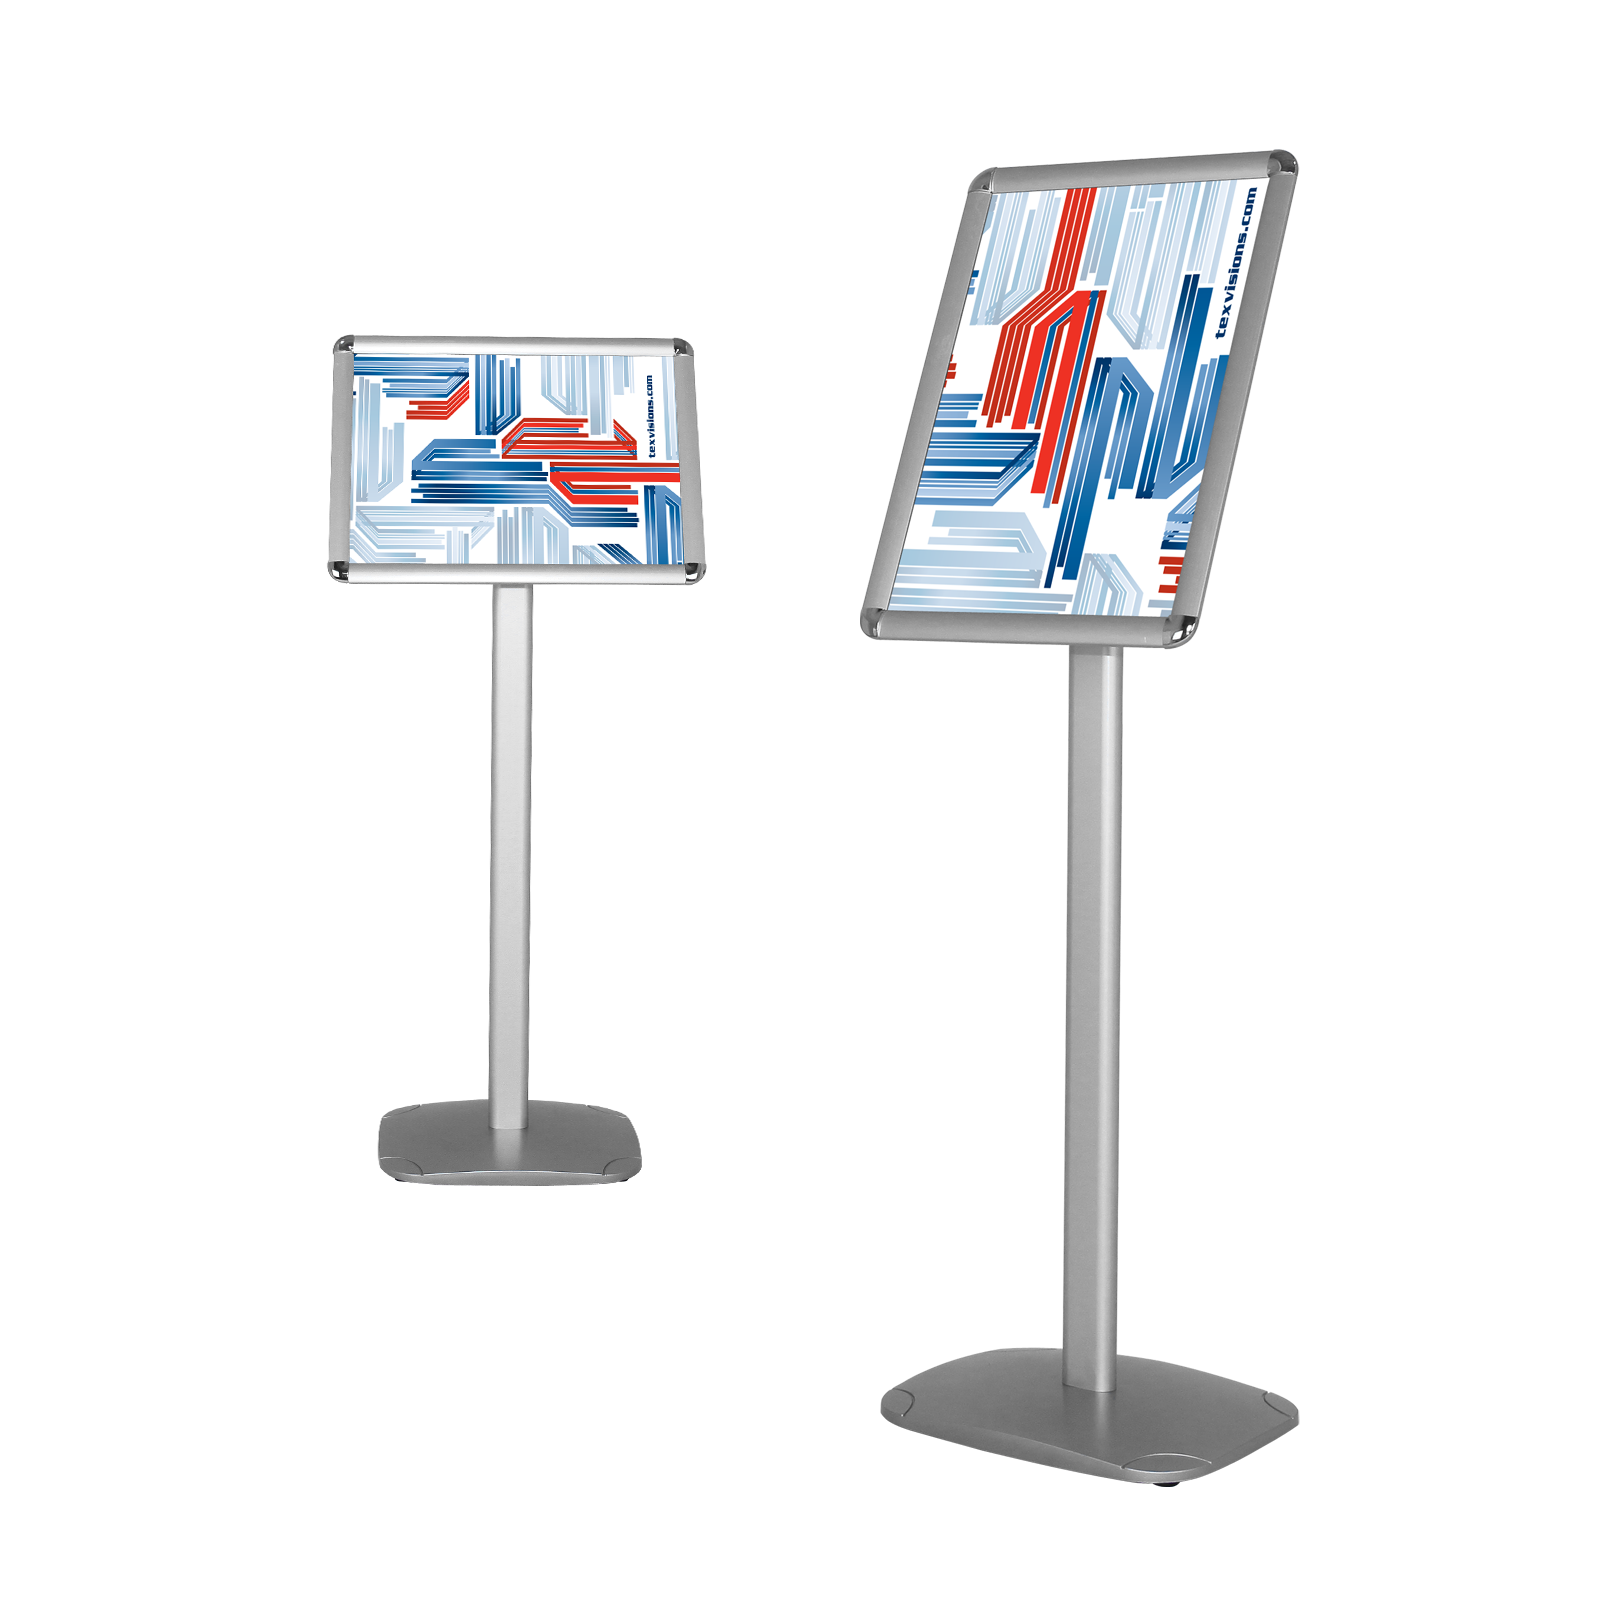 Exhibition Stand Png : Podium style sidewalk advertising display stand with